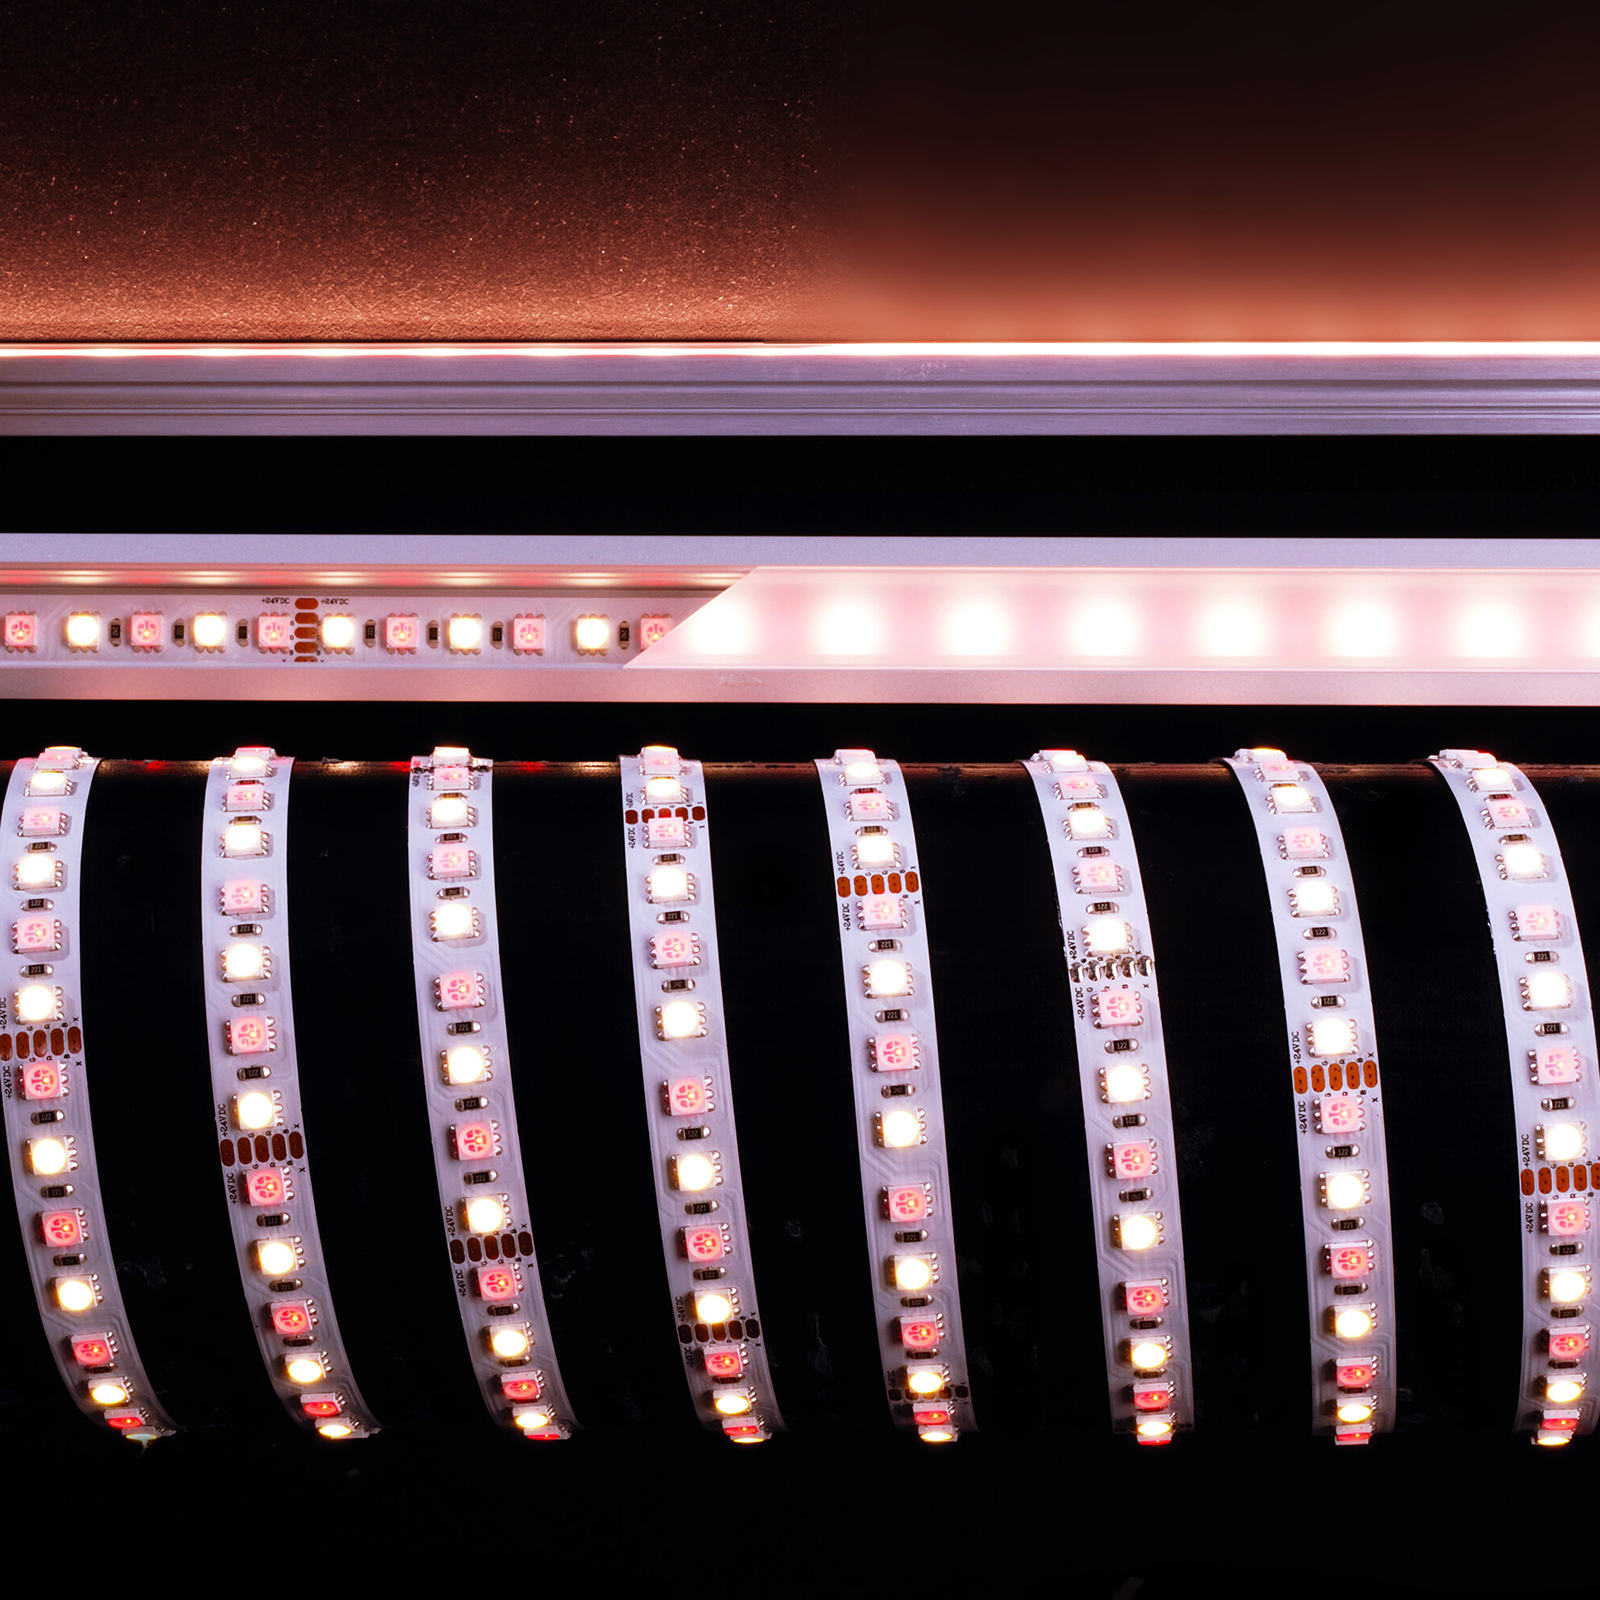 Flexible strip 115W 480 LED 5050 light RGBW 4200K 6200K 24V 3M RA>90 IP20